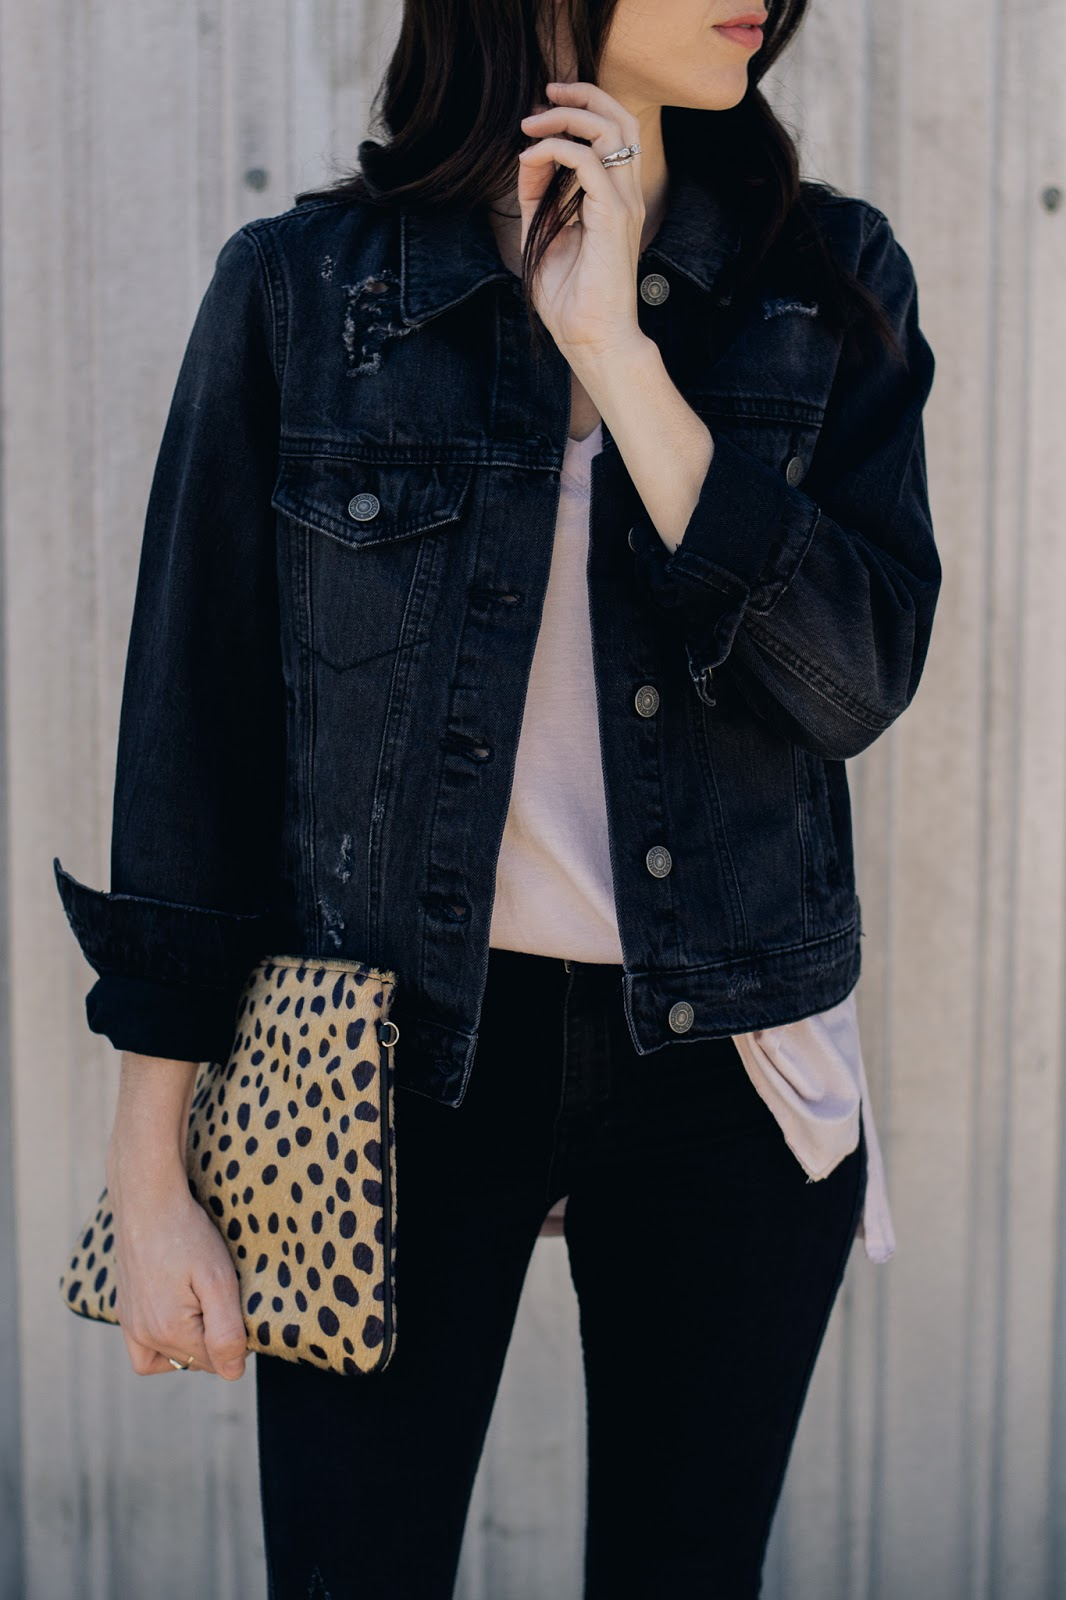 Black Distressed denim jacket and basic tee